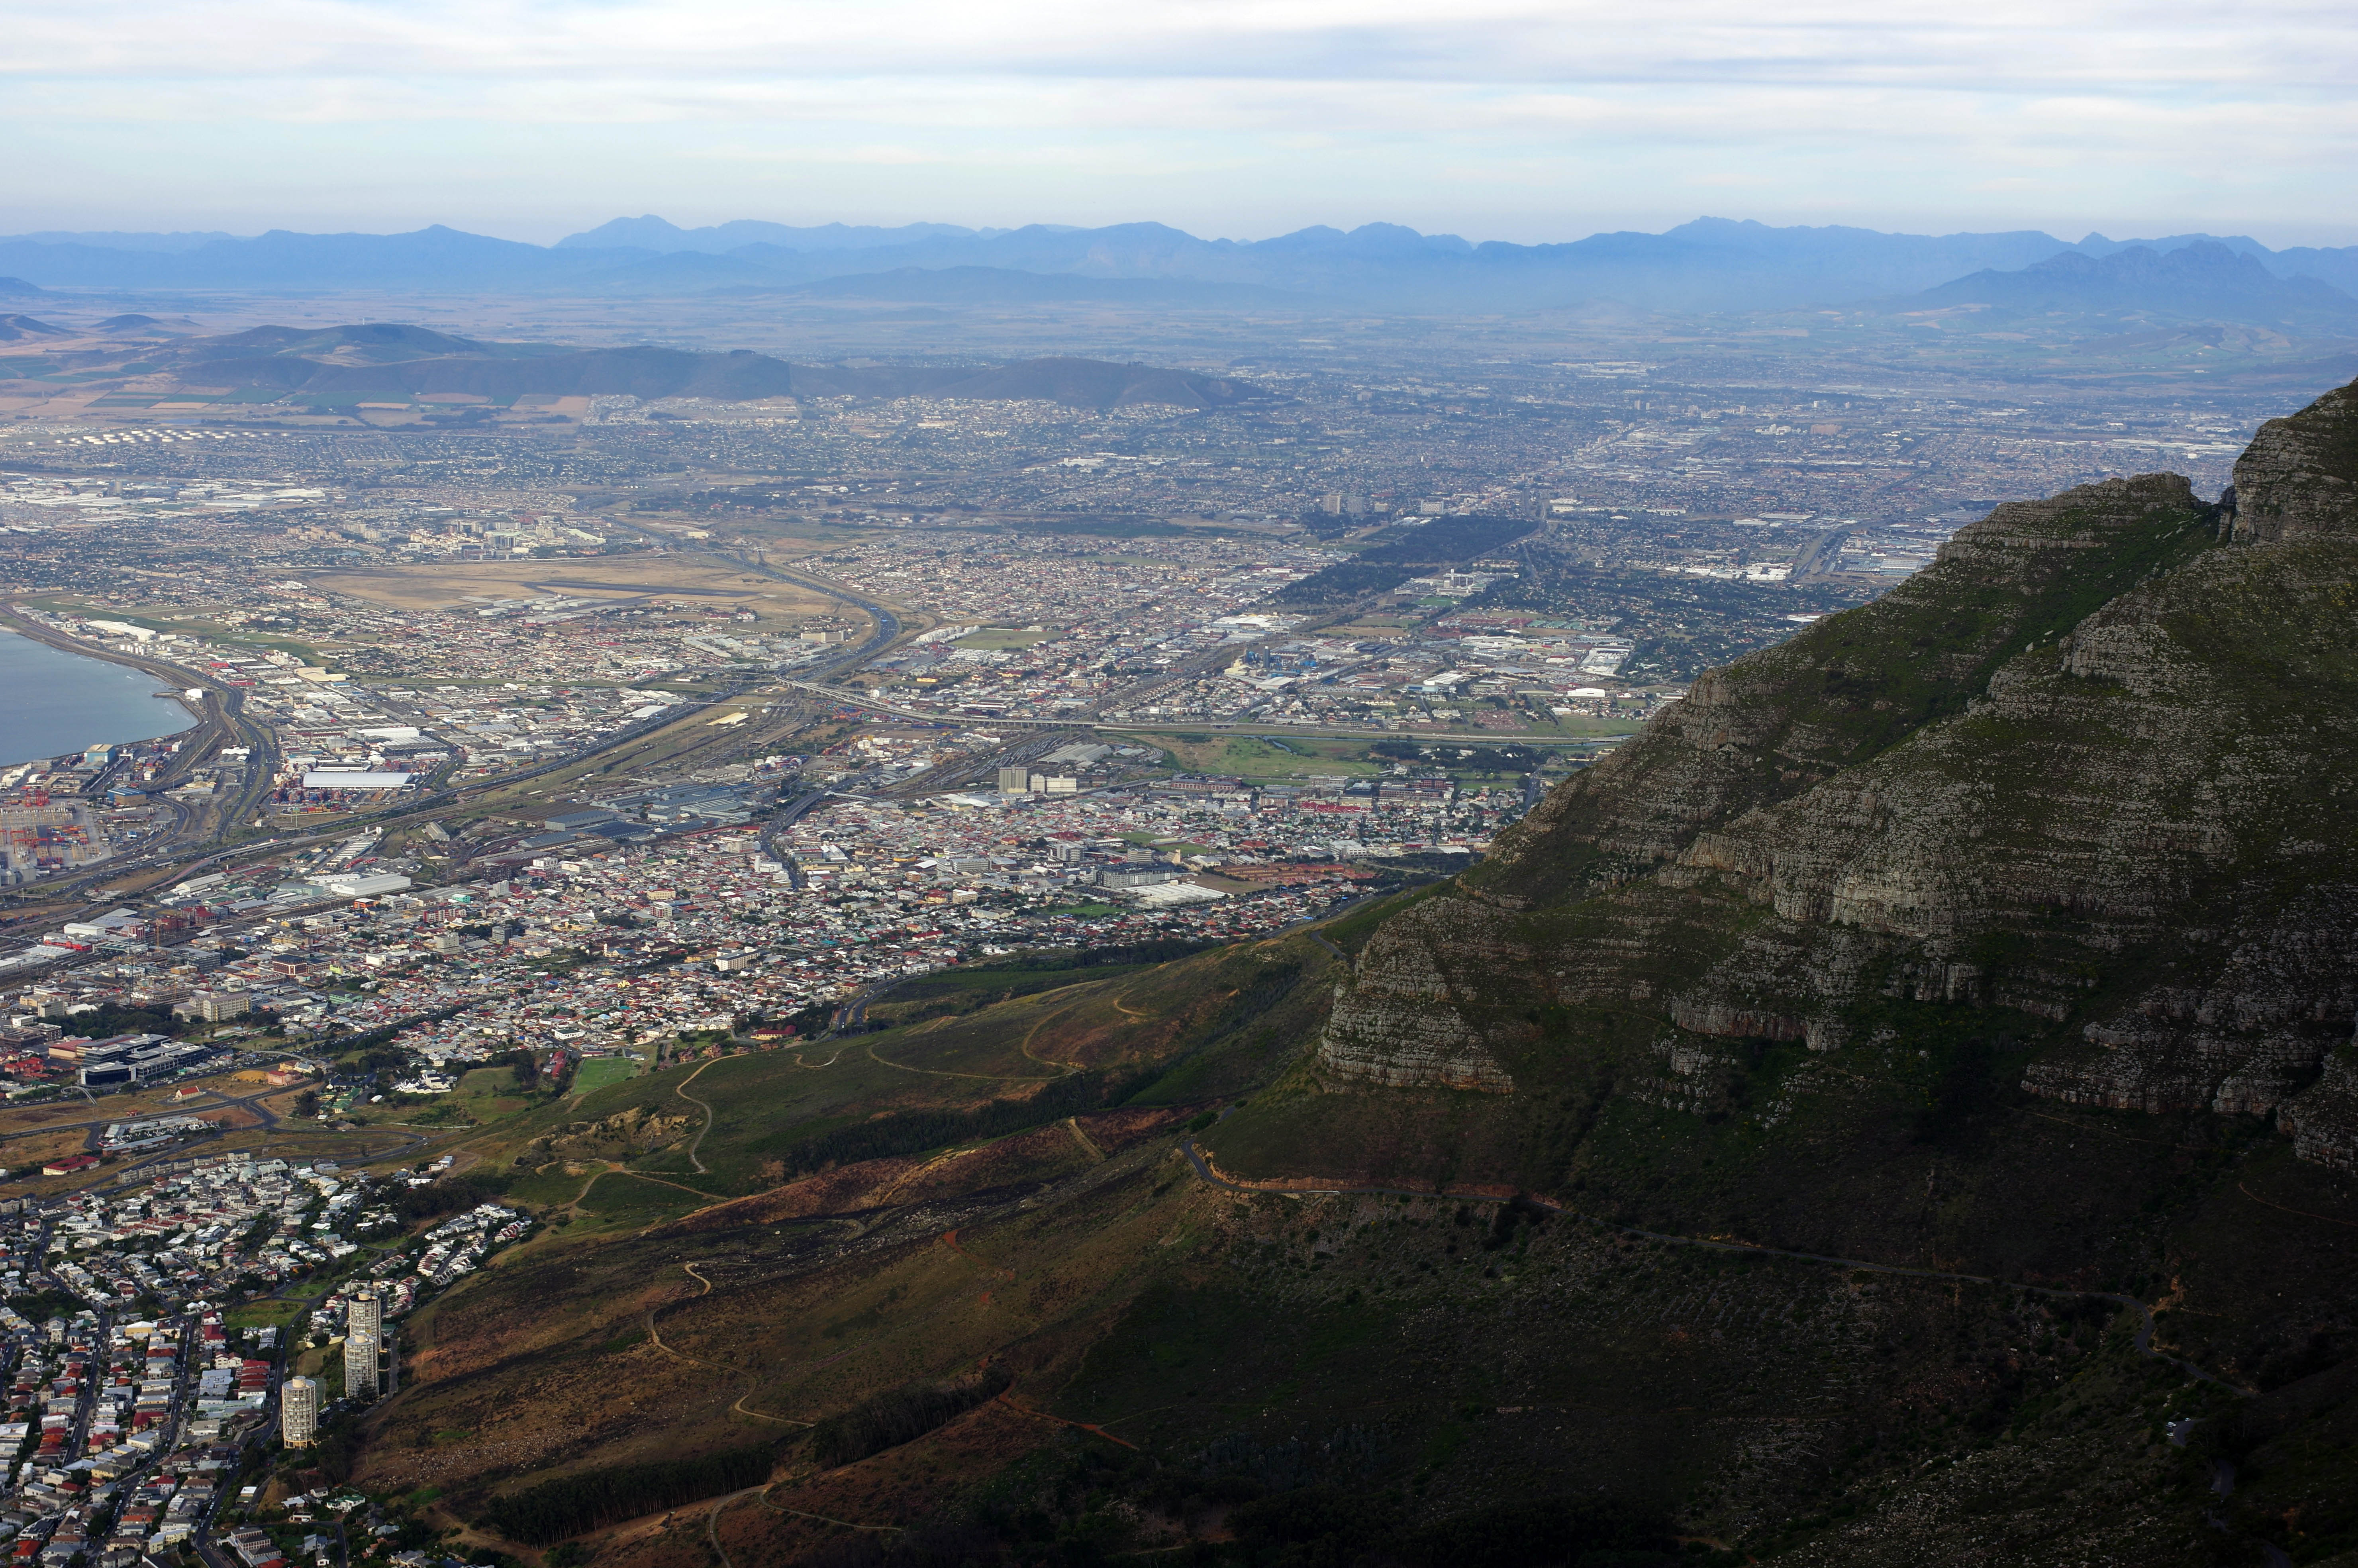 171122_CT_Table mountain20